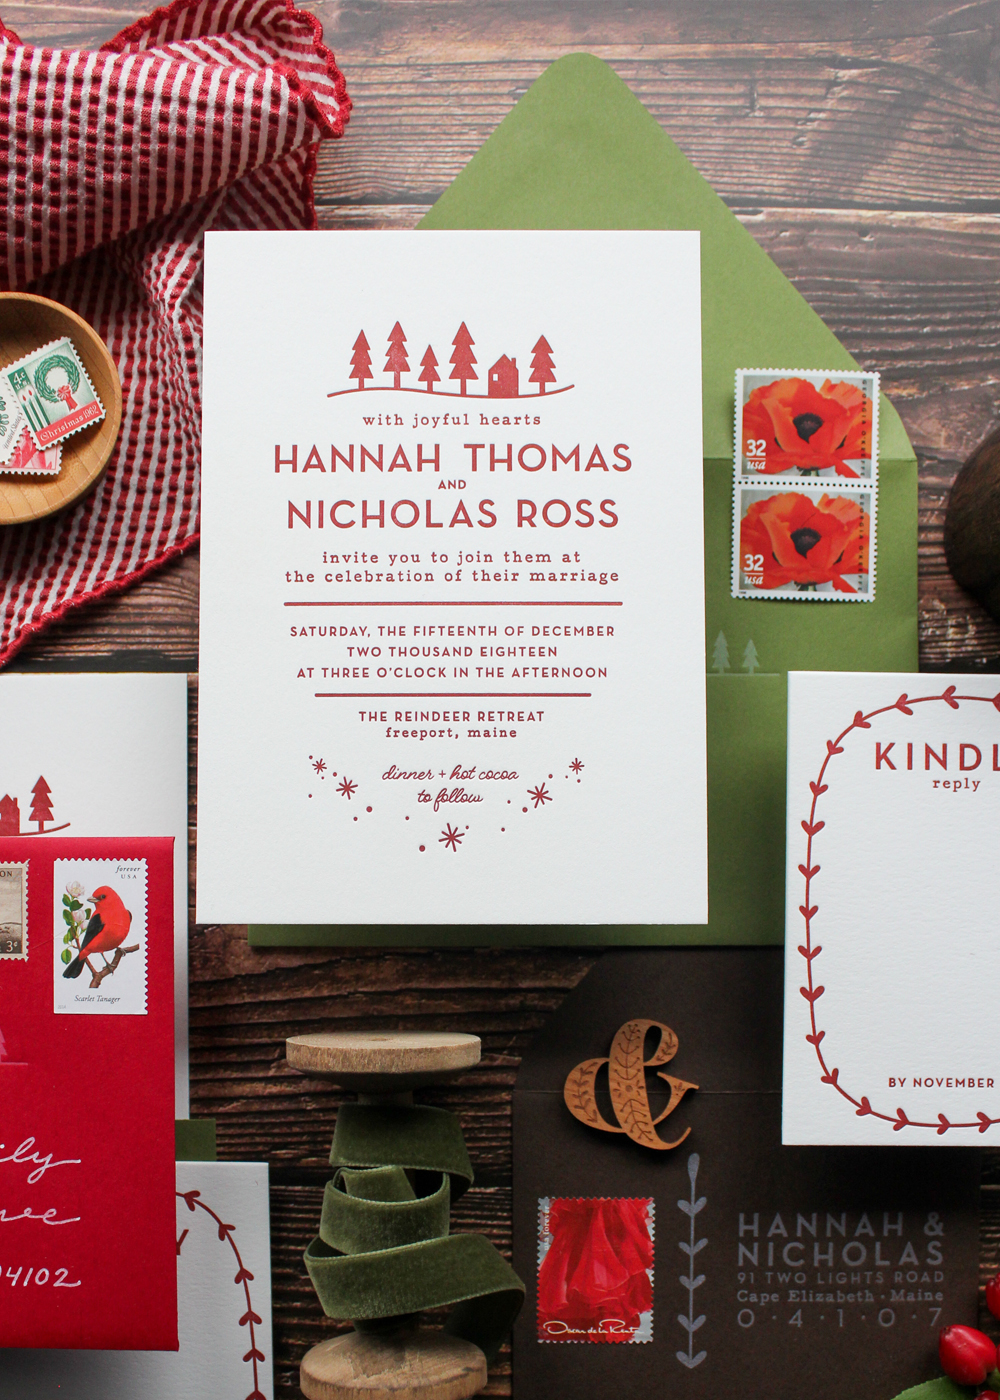 nordic hygge inspired custom letterpress wedding invite